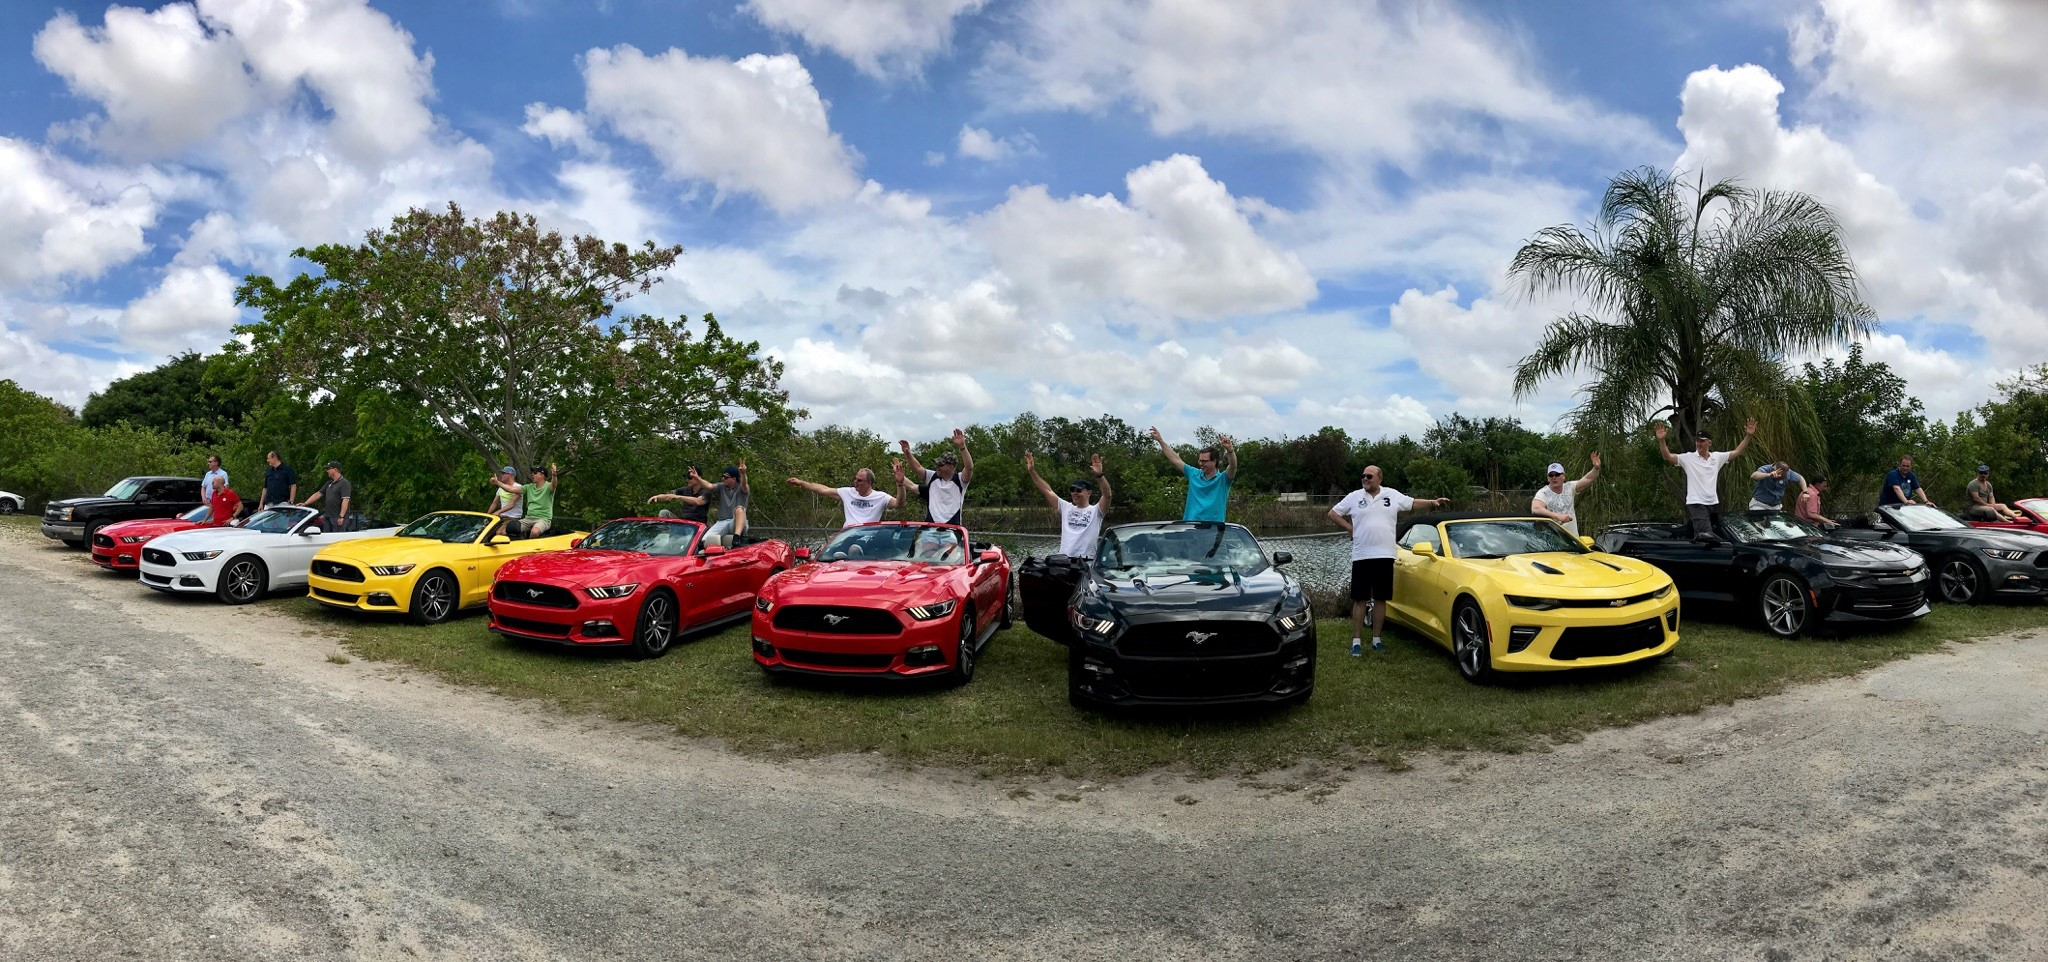 everglades with mustangs (2)